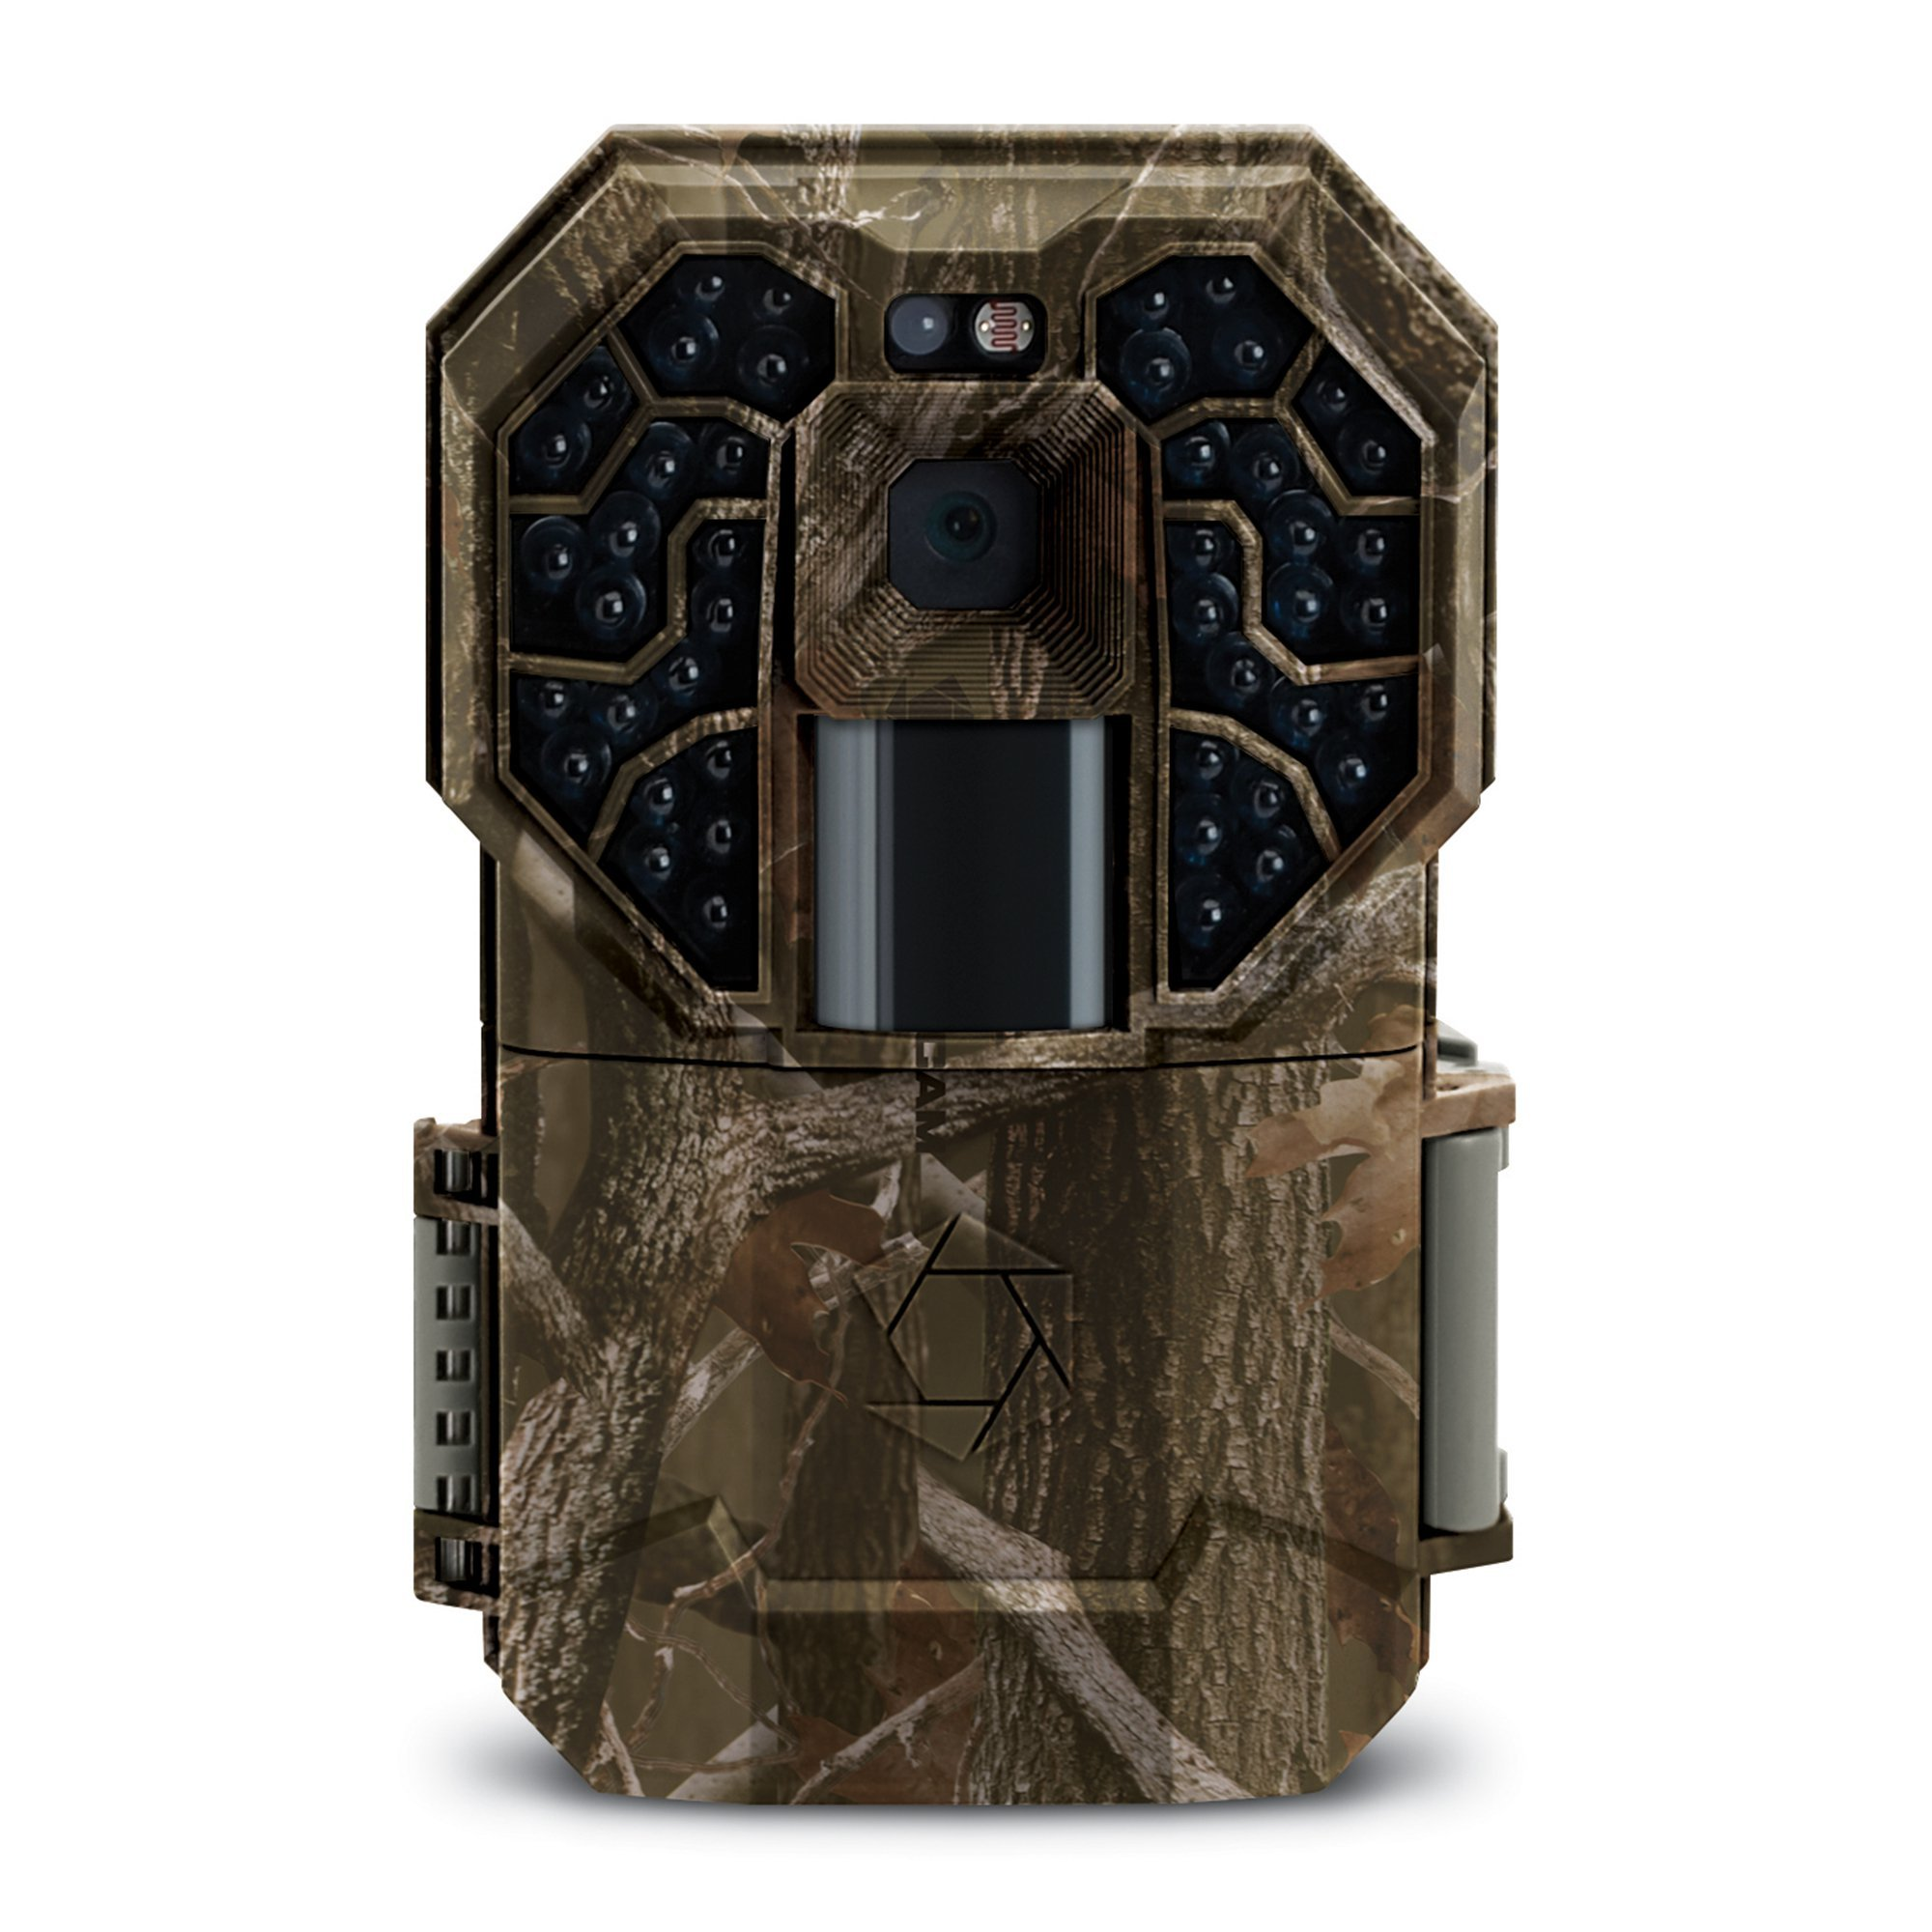 Stealth Cam 14.0 Megapixel 45 No-Glo IR Trail Camera 2 pack bundle by Stealth Cam (Image #2)